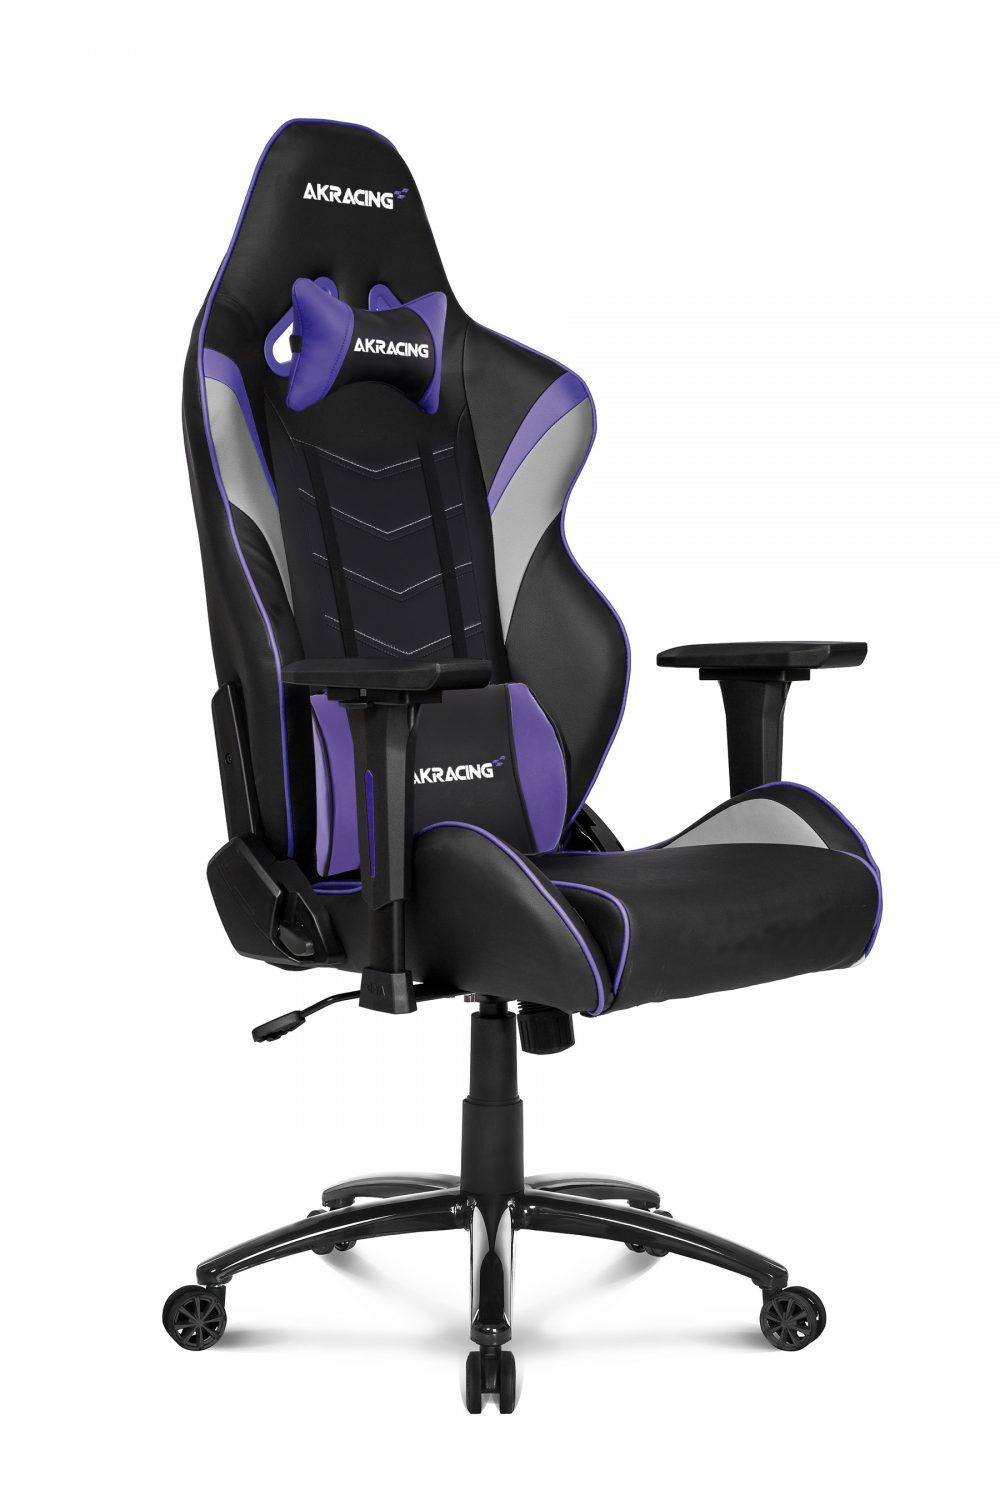 Akracing Lx Indigo Purple Gaming Chair Lx Gaming Chair Levels Up The Game Even Further With Unique Design Increased Padding Gaming Chair Chair Nursery Chair